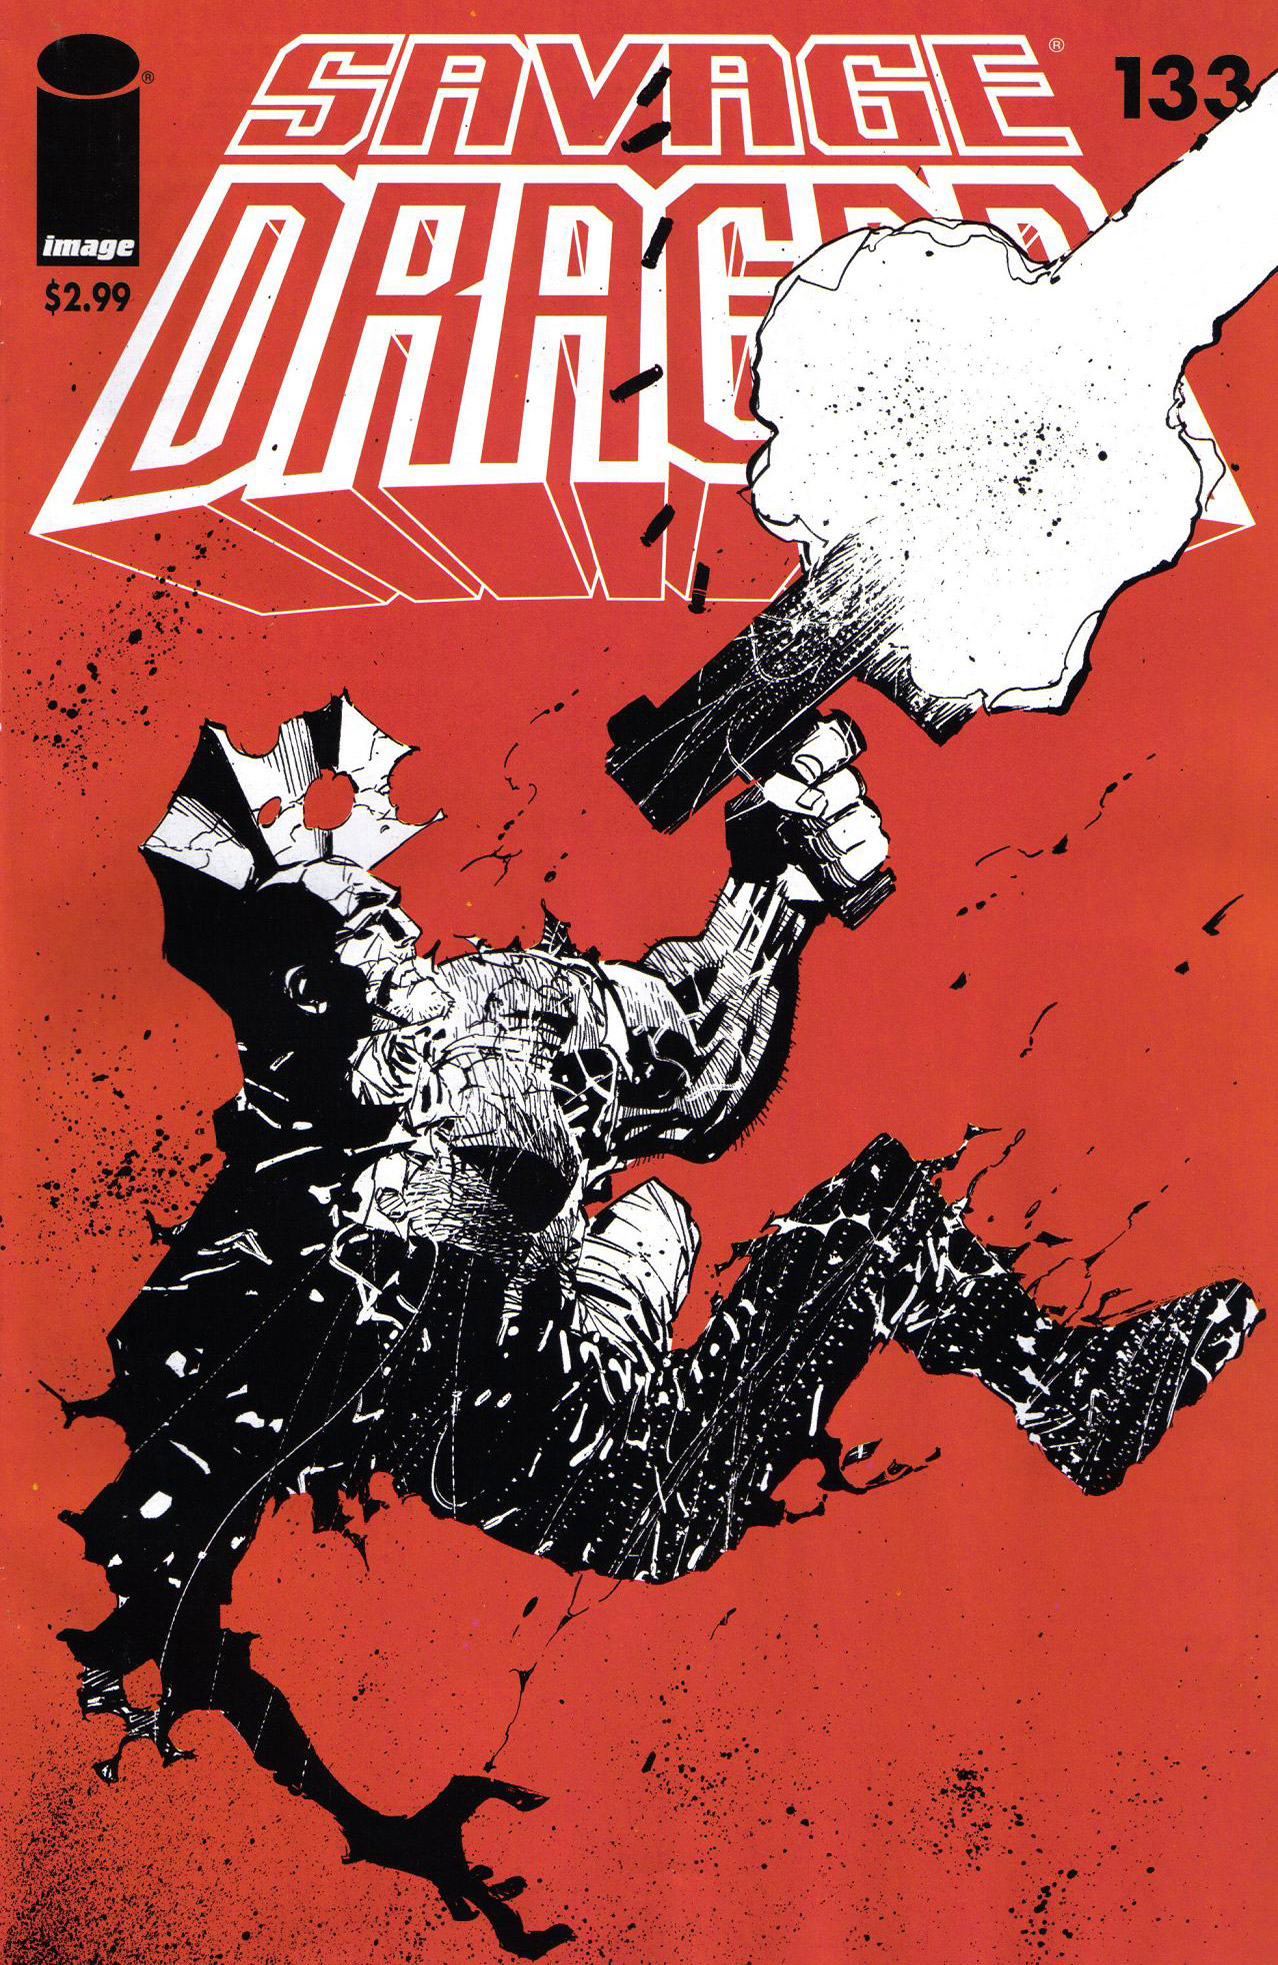 Cover Savage Dragon Vol.2 #133